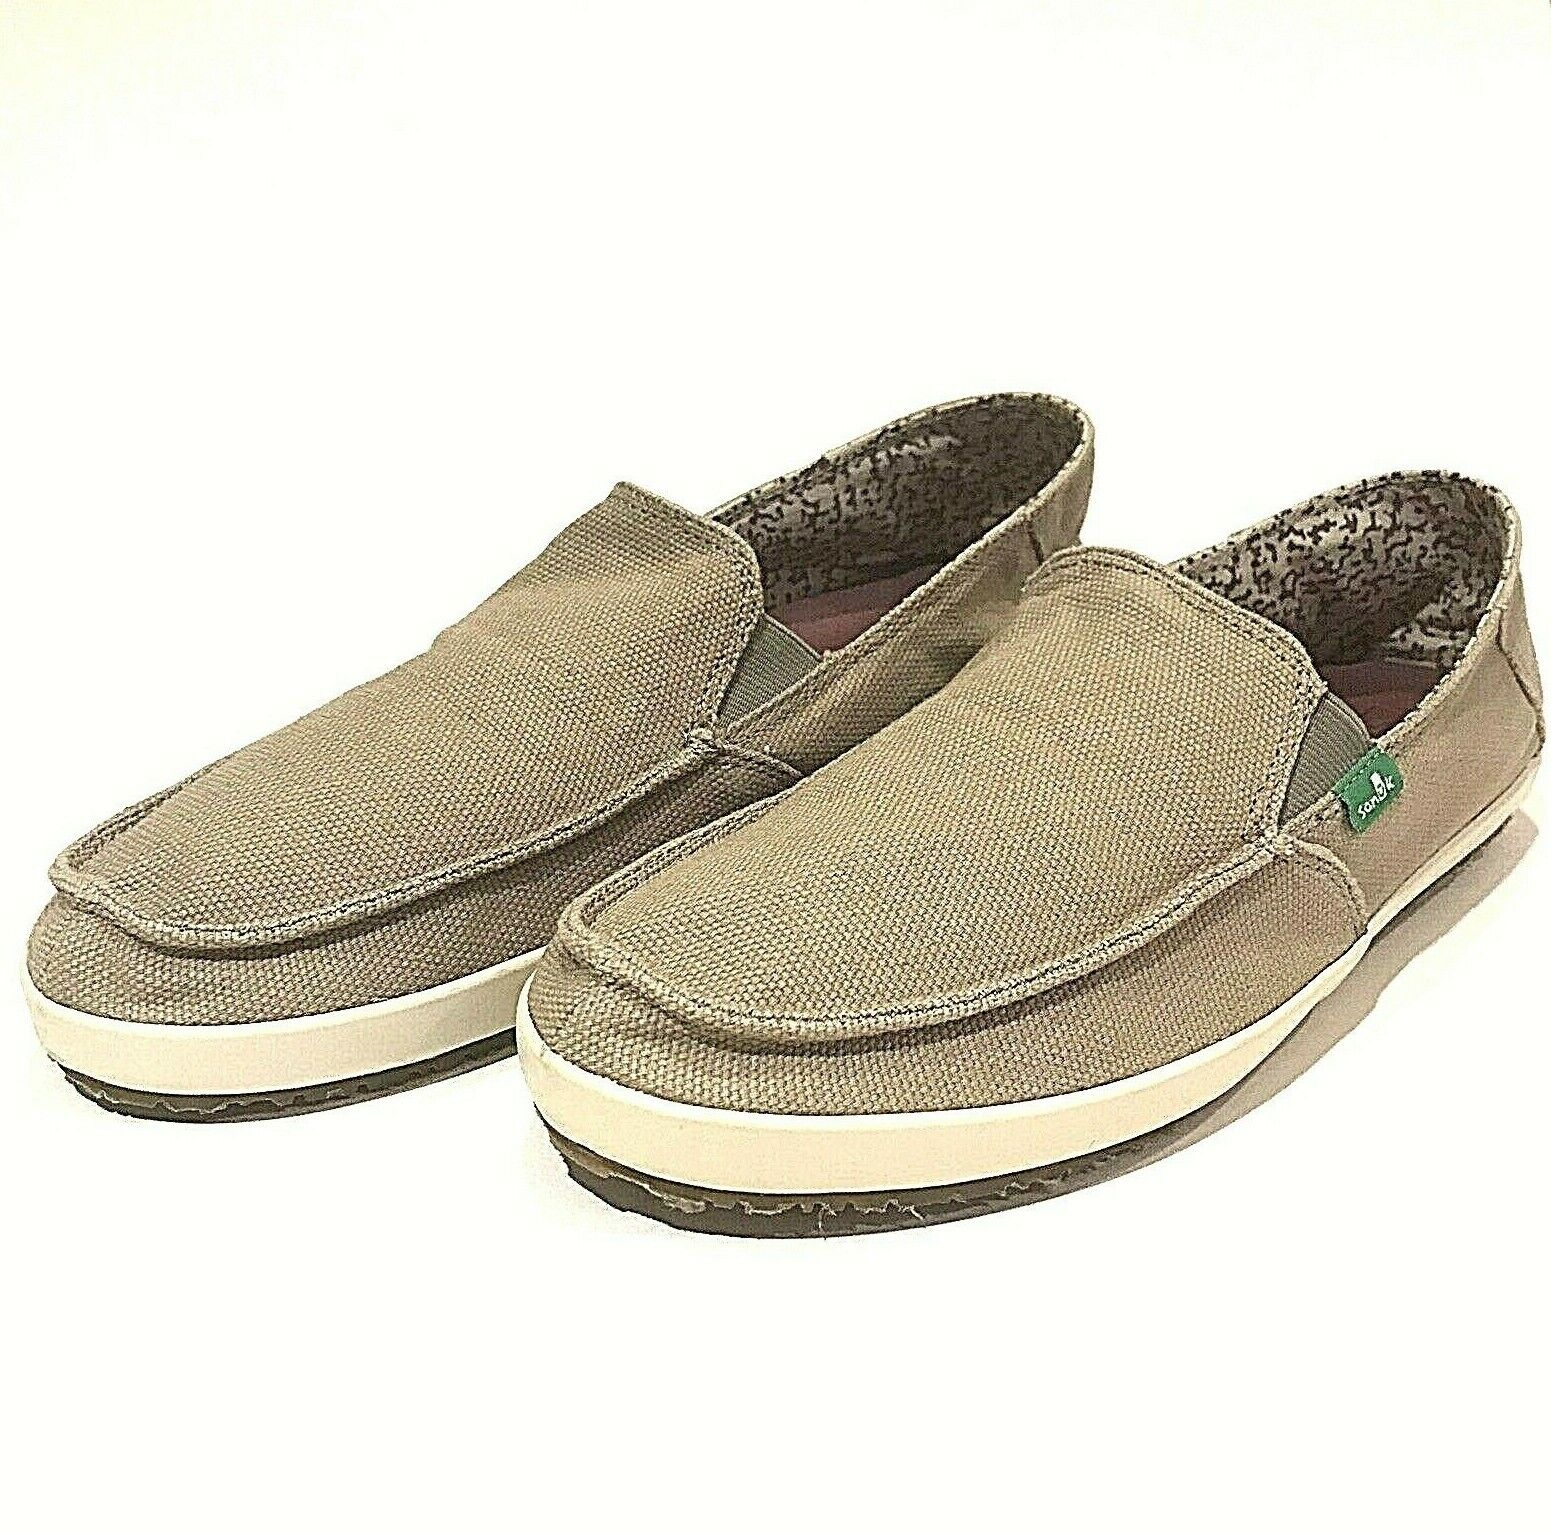 Sanuk shoes Casual Beige Slip-On Fabric Mens Size US 9 EUR 42 UK 8